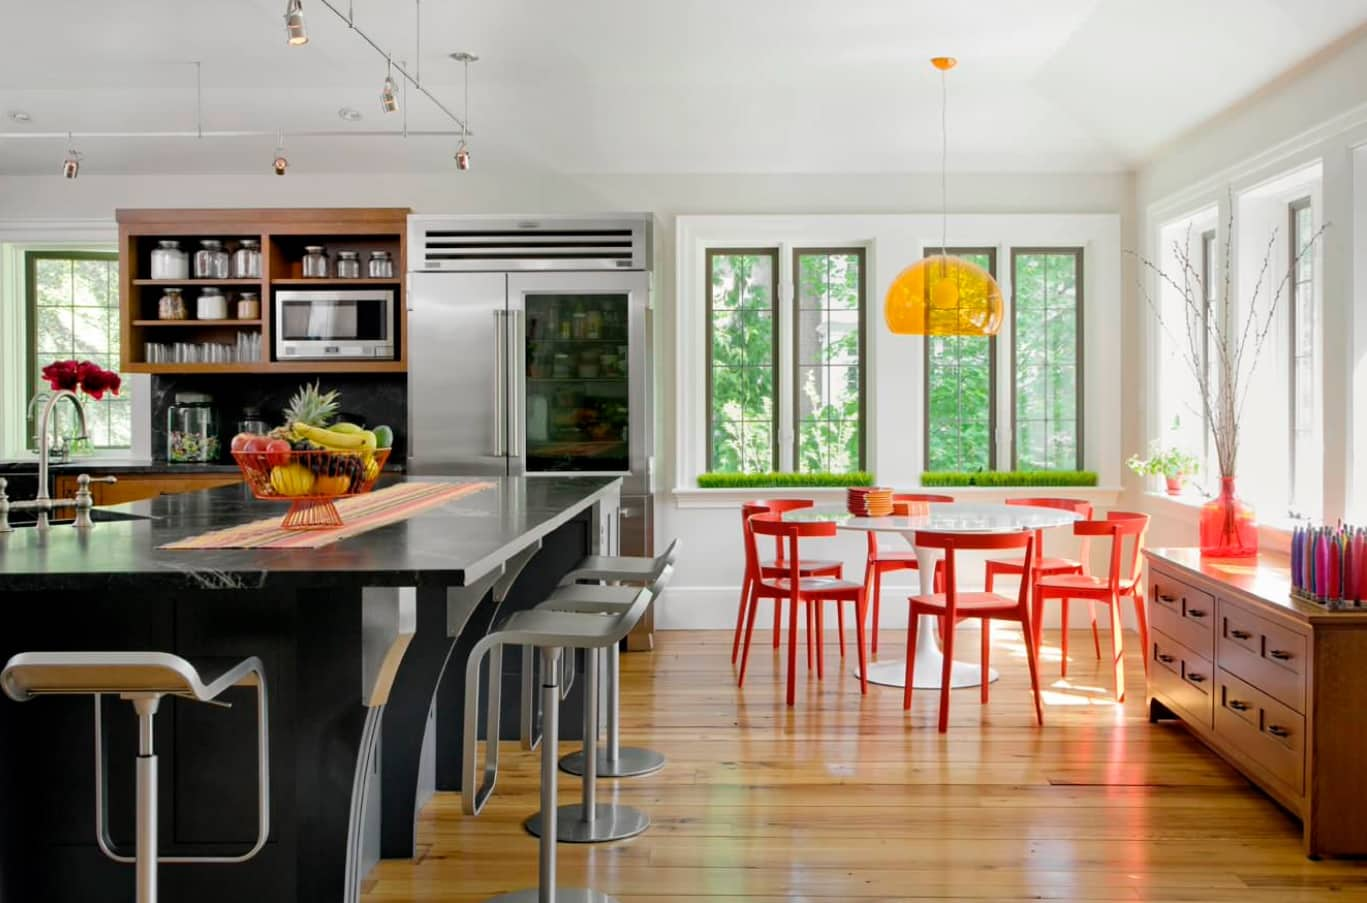 Overview of 10+ Biggest Home Design Trends in 2019 so Far. Large casual kitchen with steel surfaces